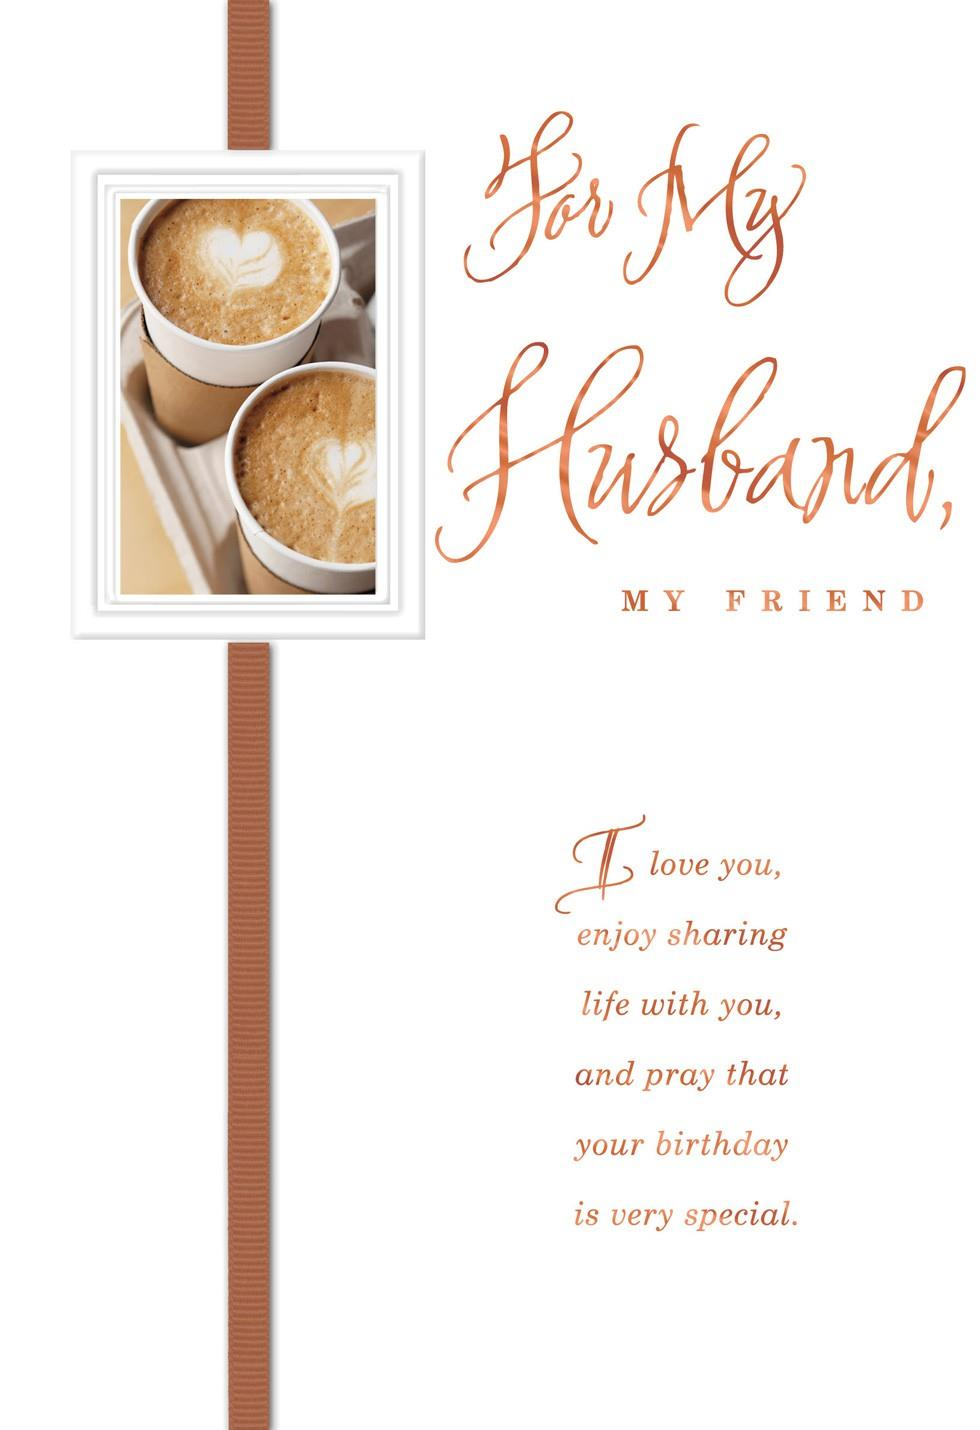 My Husband My Friend Religious Birthday Card Greeting Cards – Birthday Cards Religious